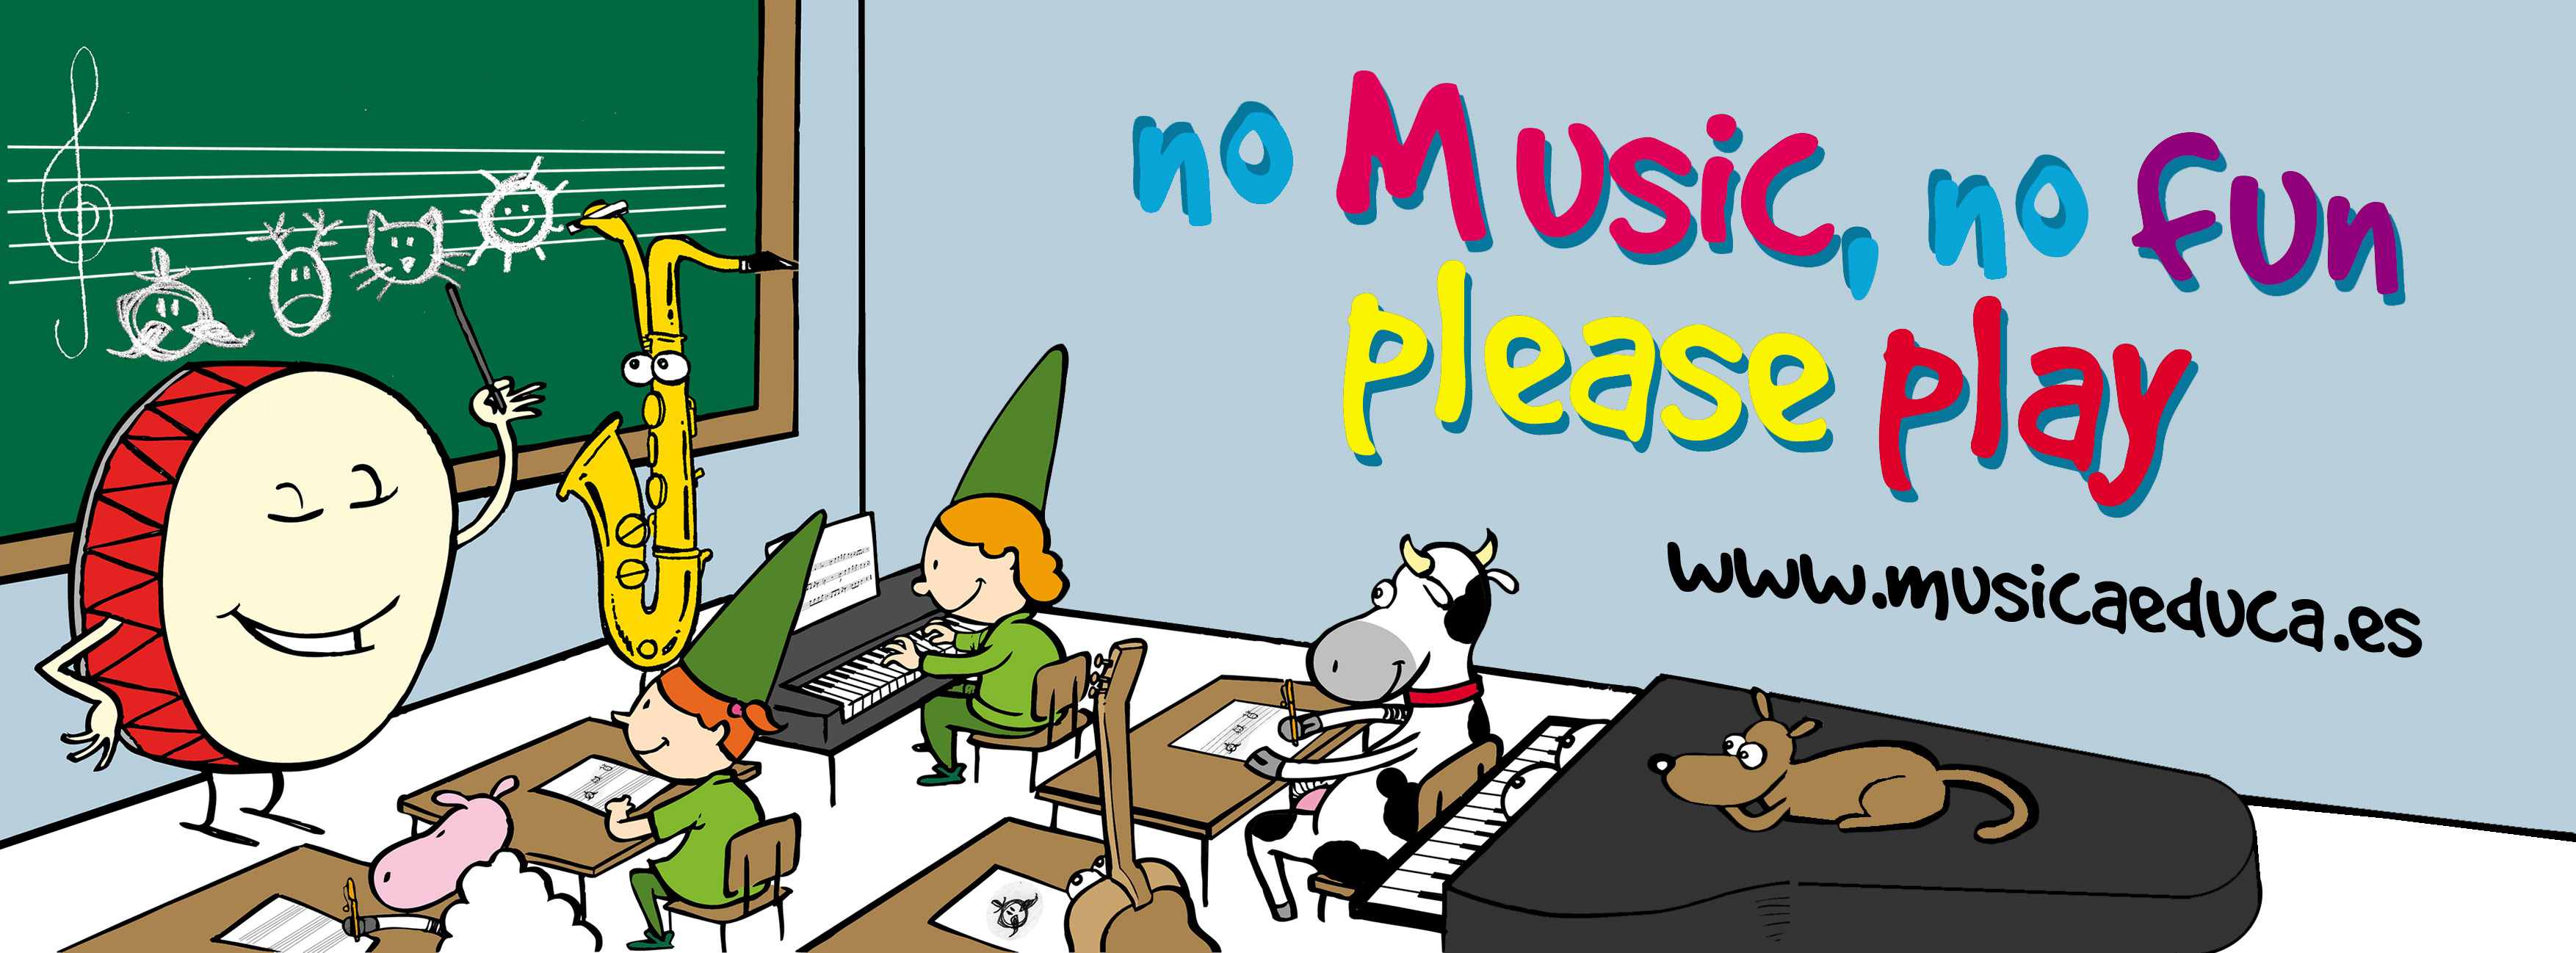 no music no fun